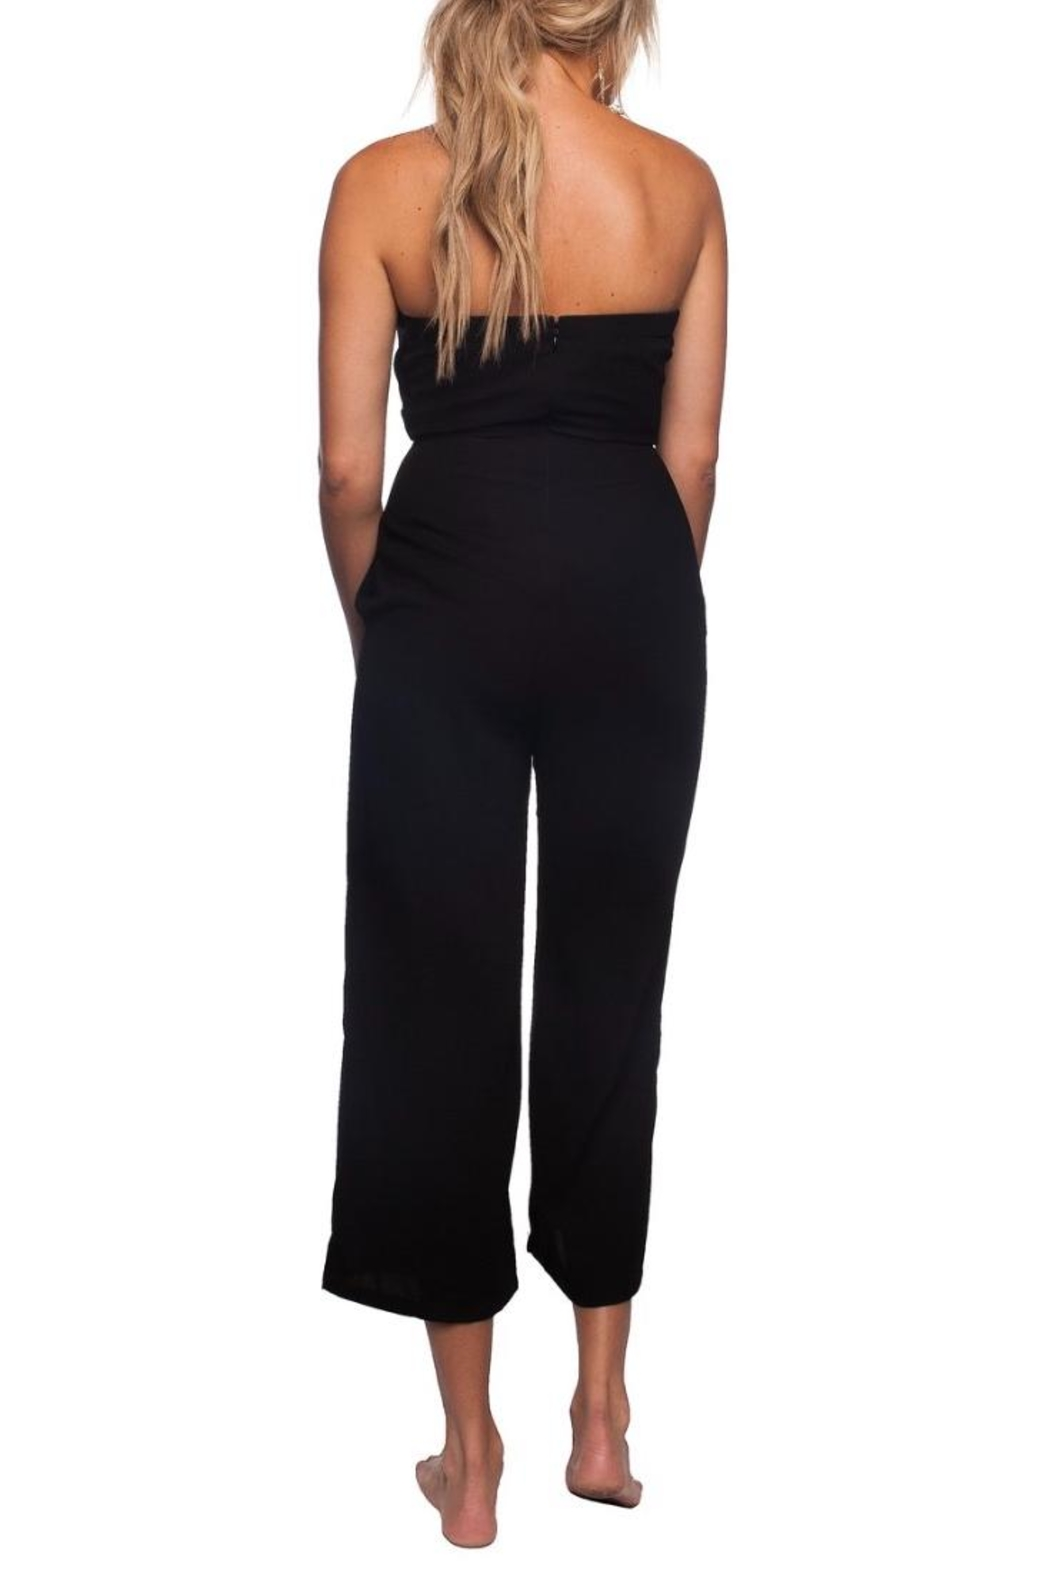 Buddy Love Black Tie-Front Jumpsuit - Side Cropped Image